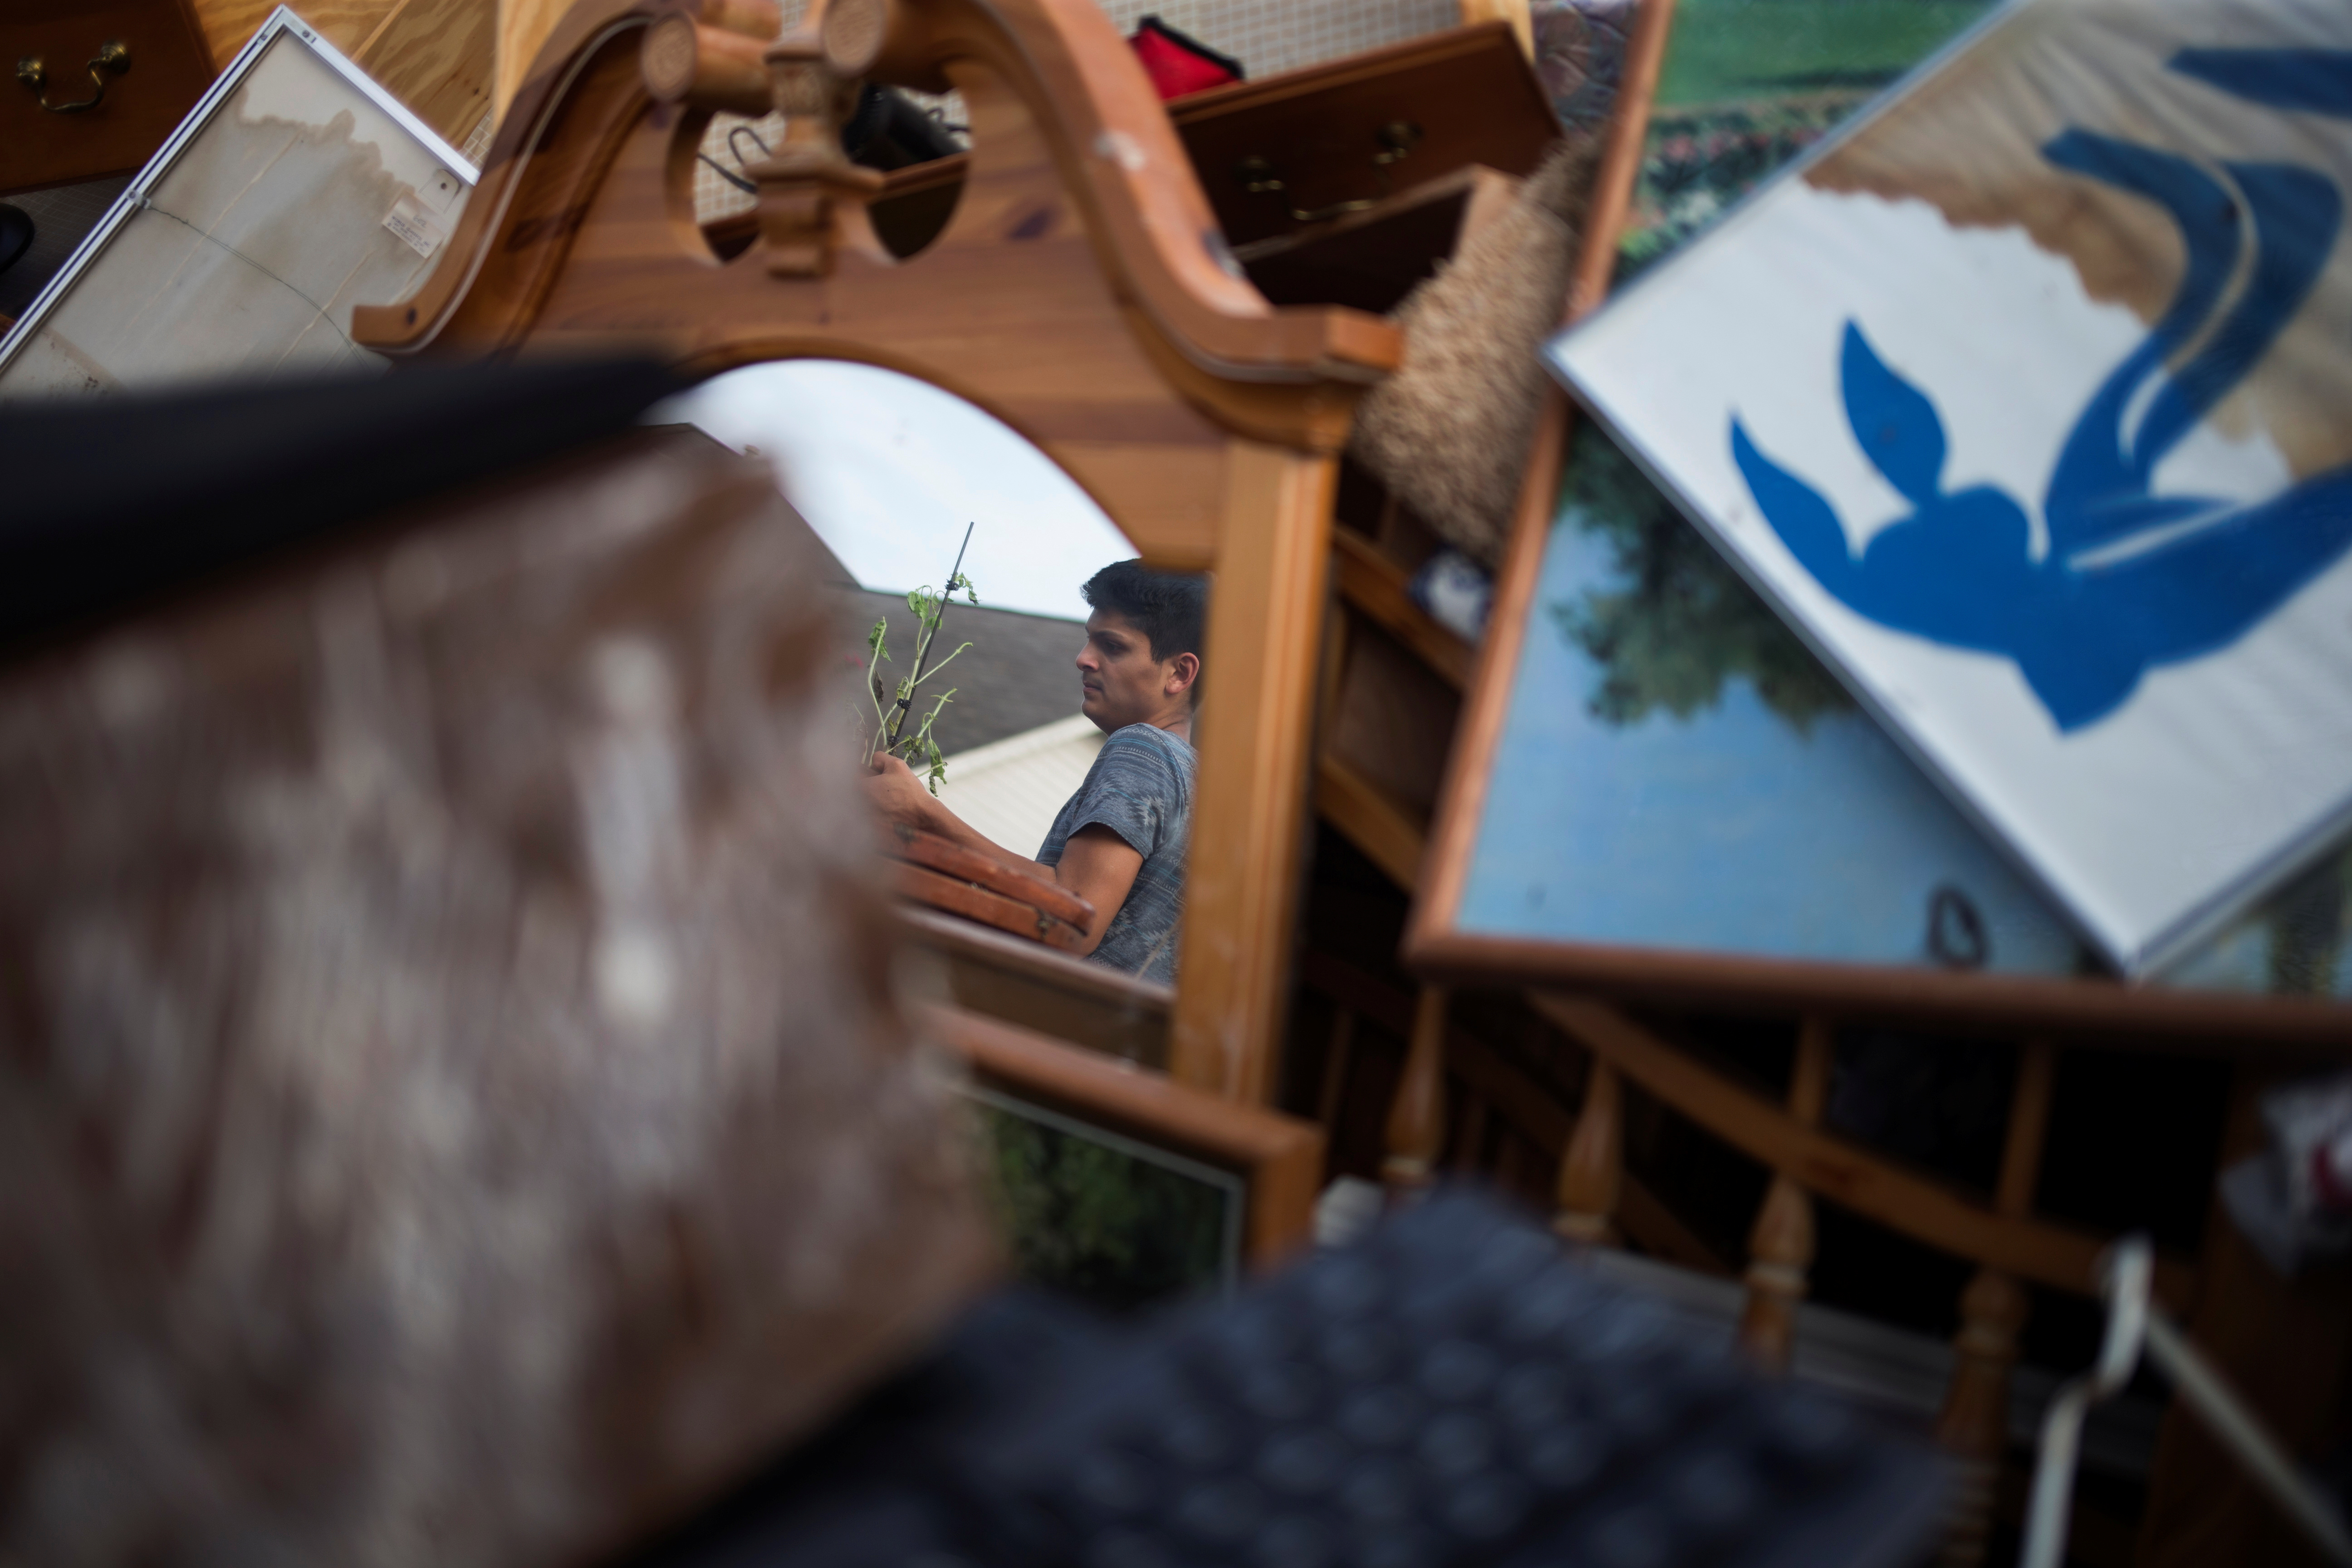 Isaac Zermeno is reflected in a mirror as he helps discard furniture from the house of a neighbor who was left flooded from Tropical Storm Harvey in Houston, Texas on Sept. 3, 2017. (REUTERS/Adrees Latif)